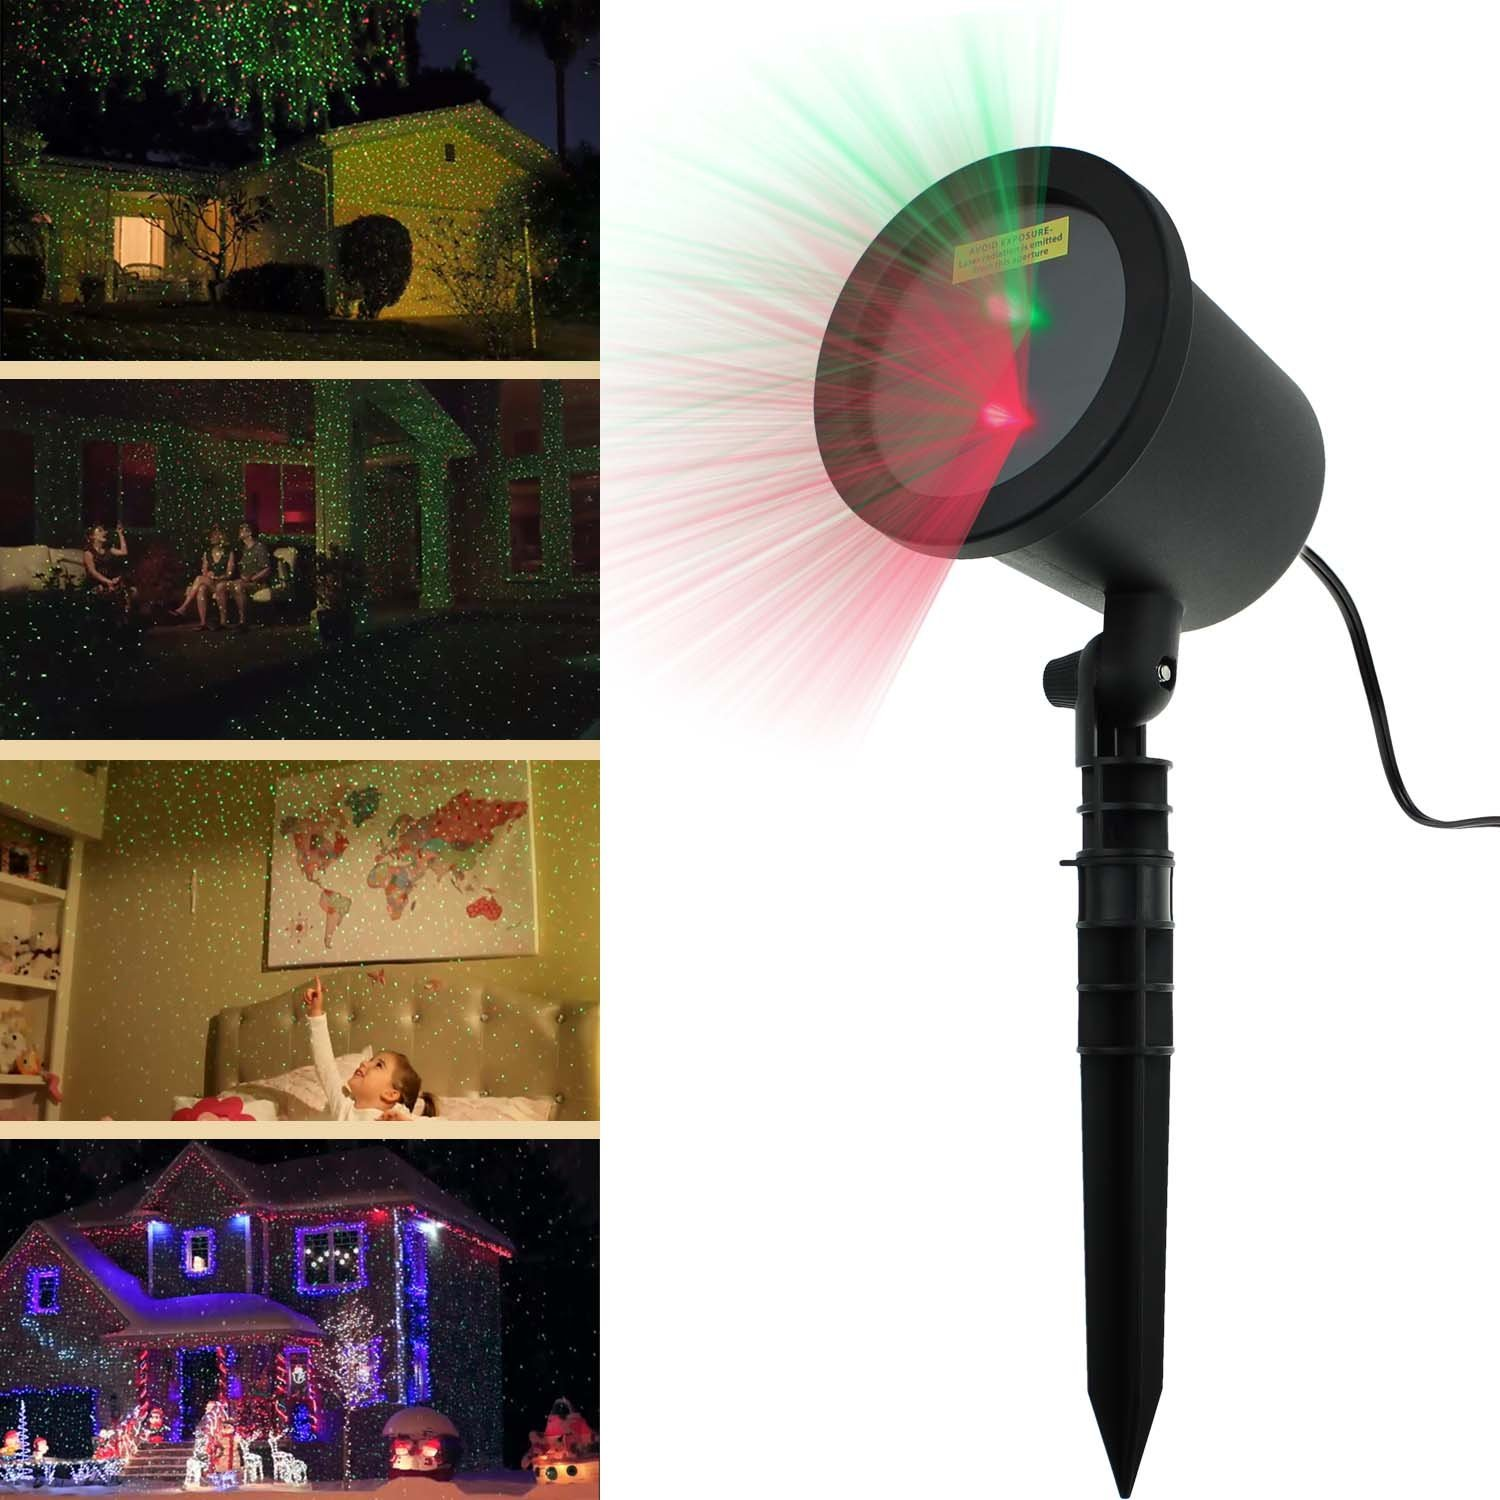 #987033 Not Just Another Southern Gal: Waterproof Red & Green Dual  6437 décoration noel laser 1500x1500 px @ aertt.com